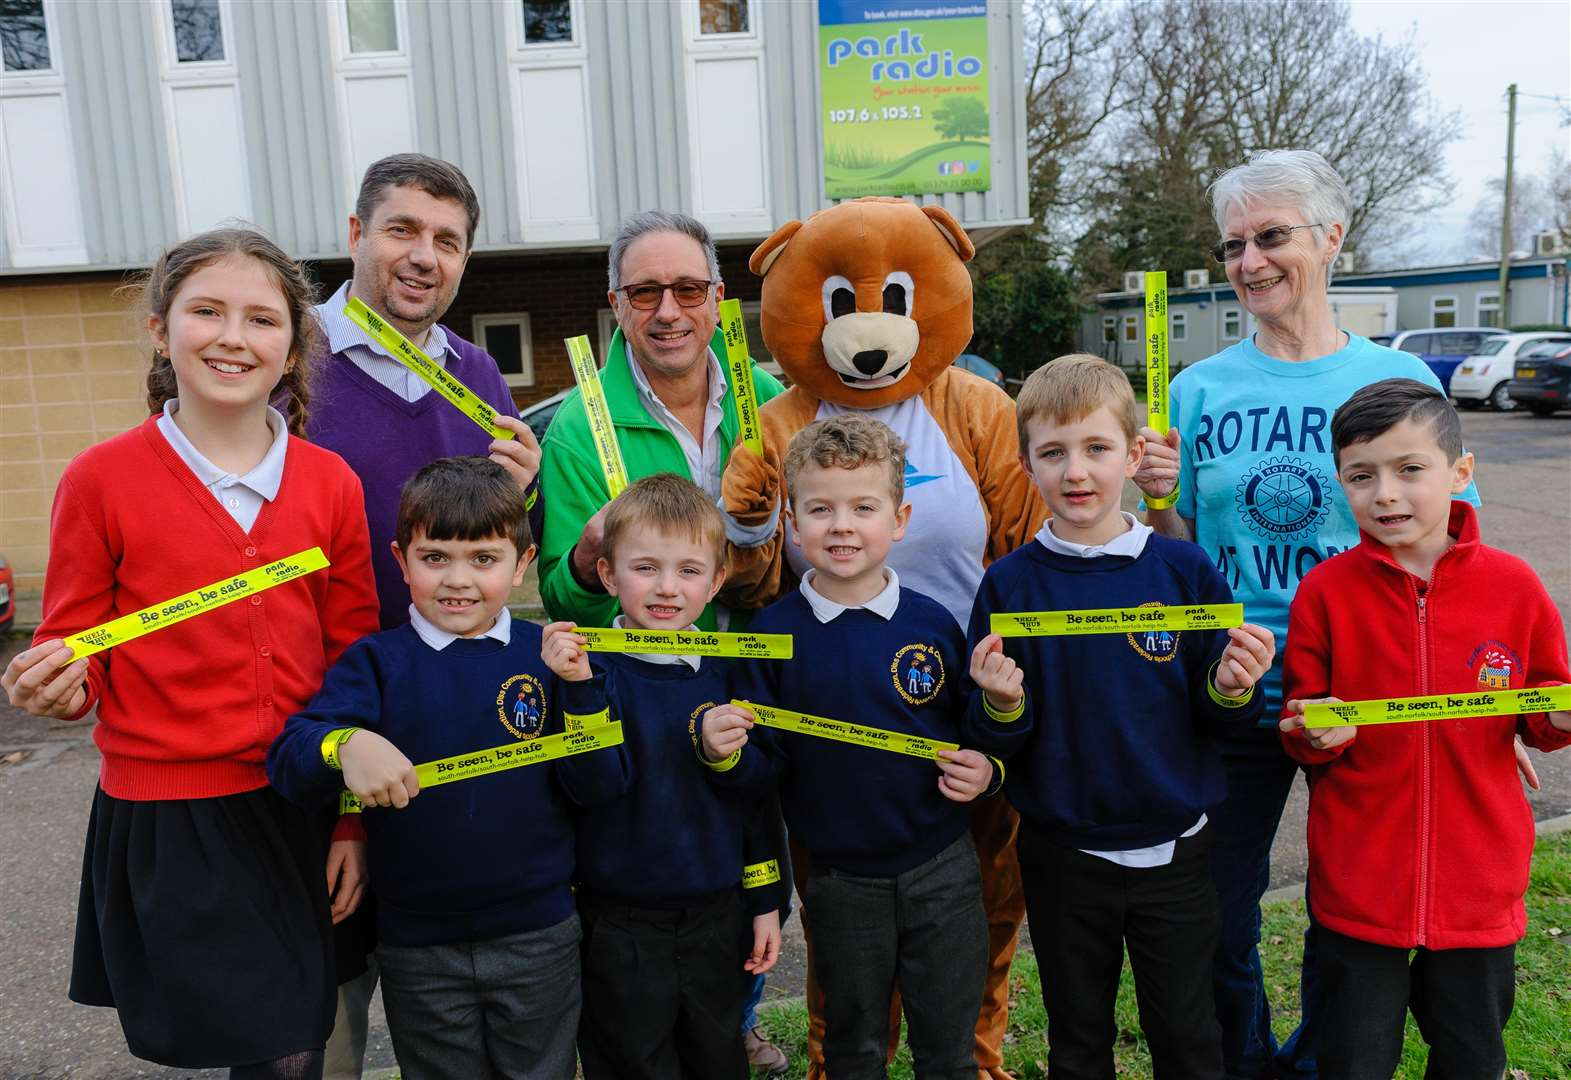 Park Radio broadcasts safety message to schools